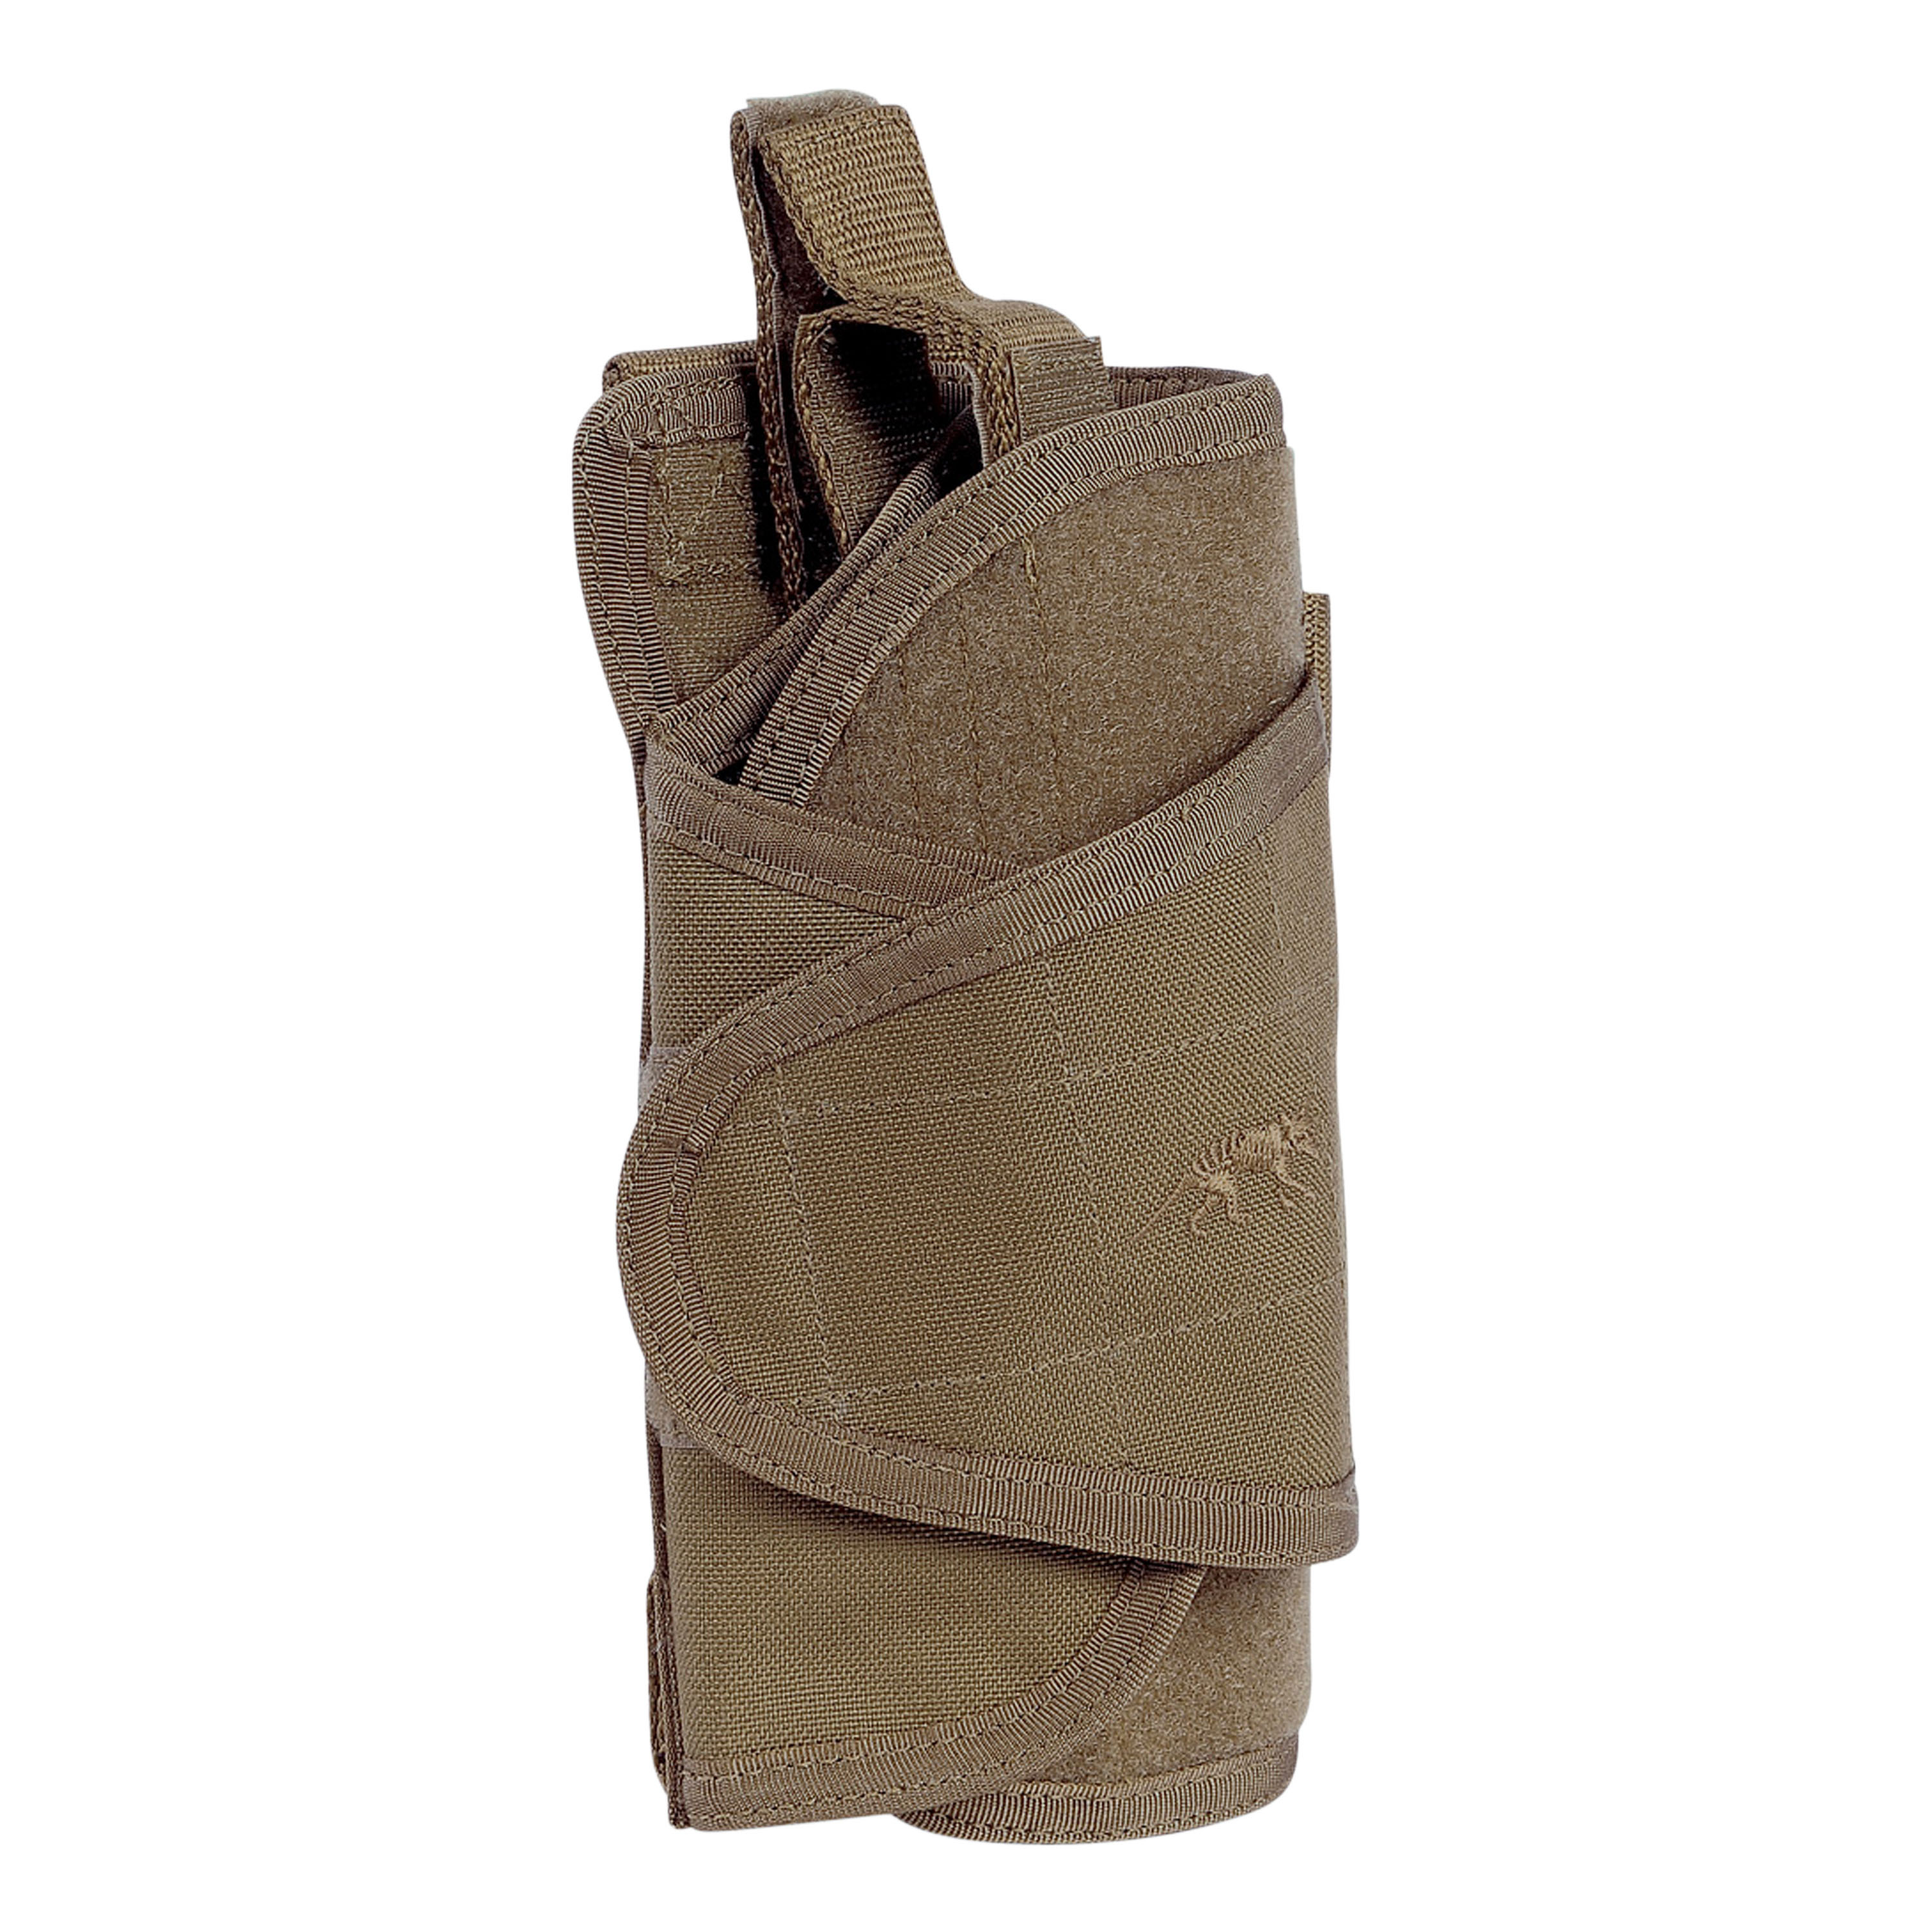 TT Tactical Holster MKII coyote